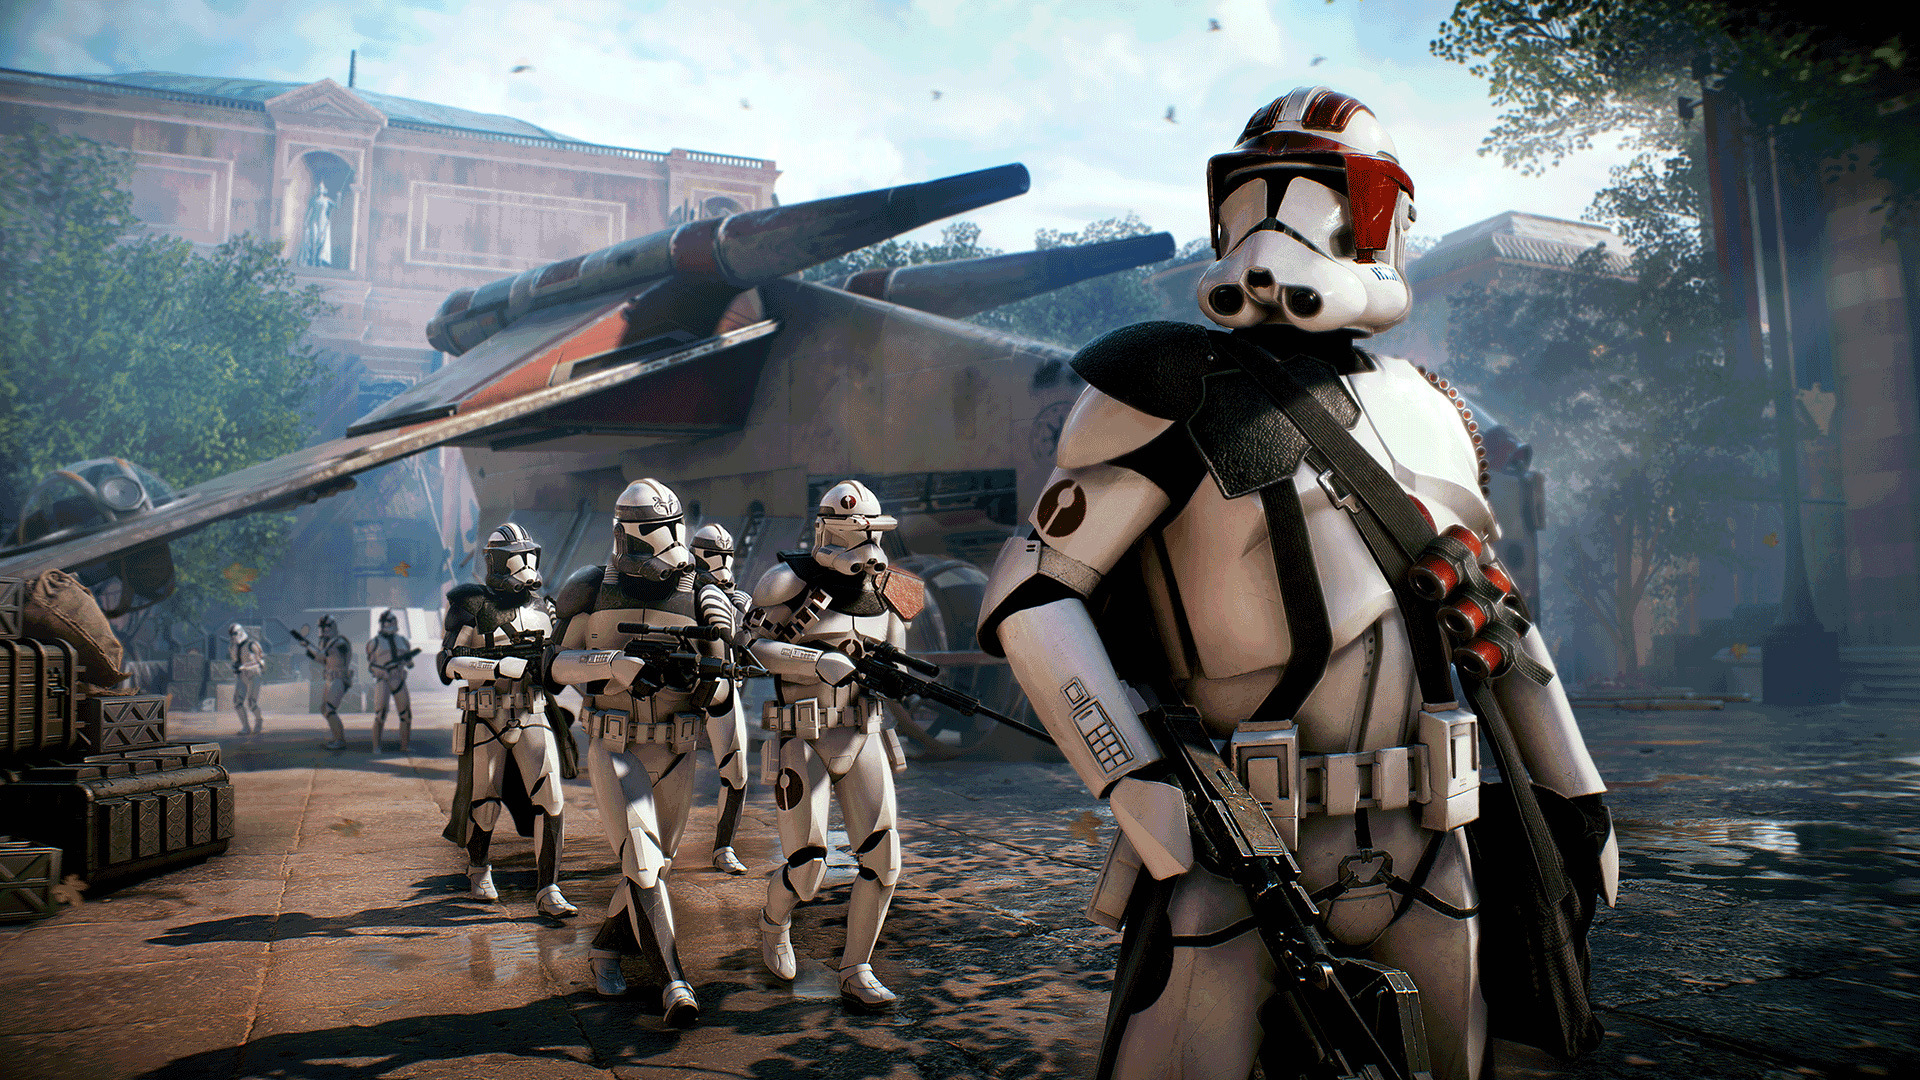 Star Wars Battlefront II is worth grabbing while it's free on PC